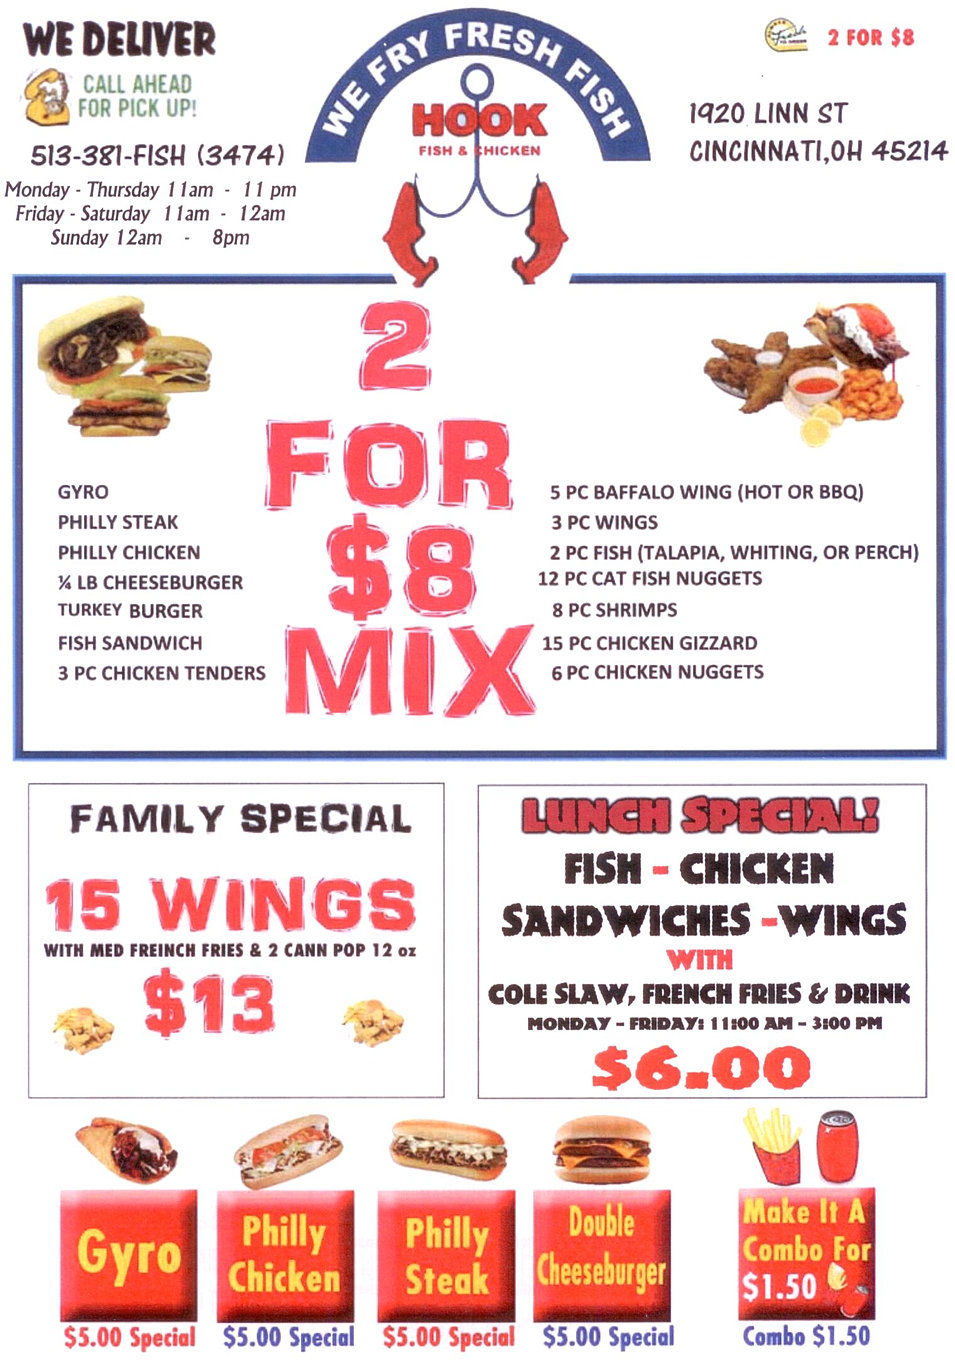 Welcome to hook fish chicken downtown for Fish and chicken menu